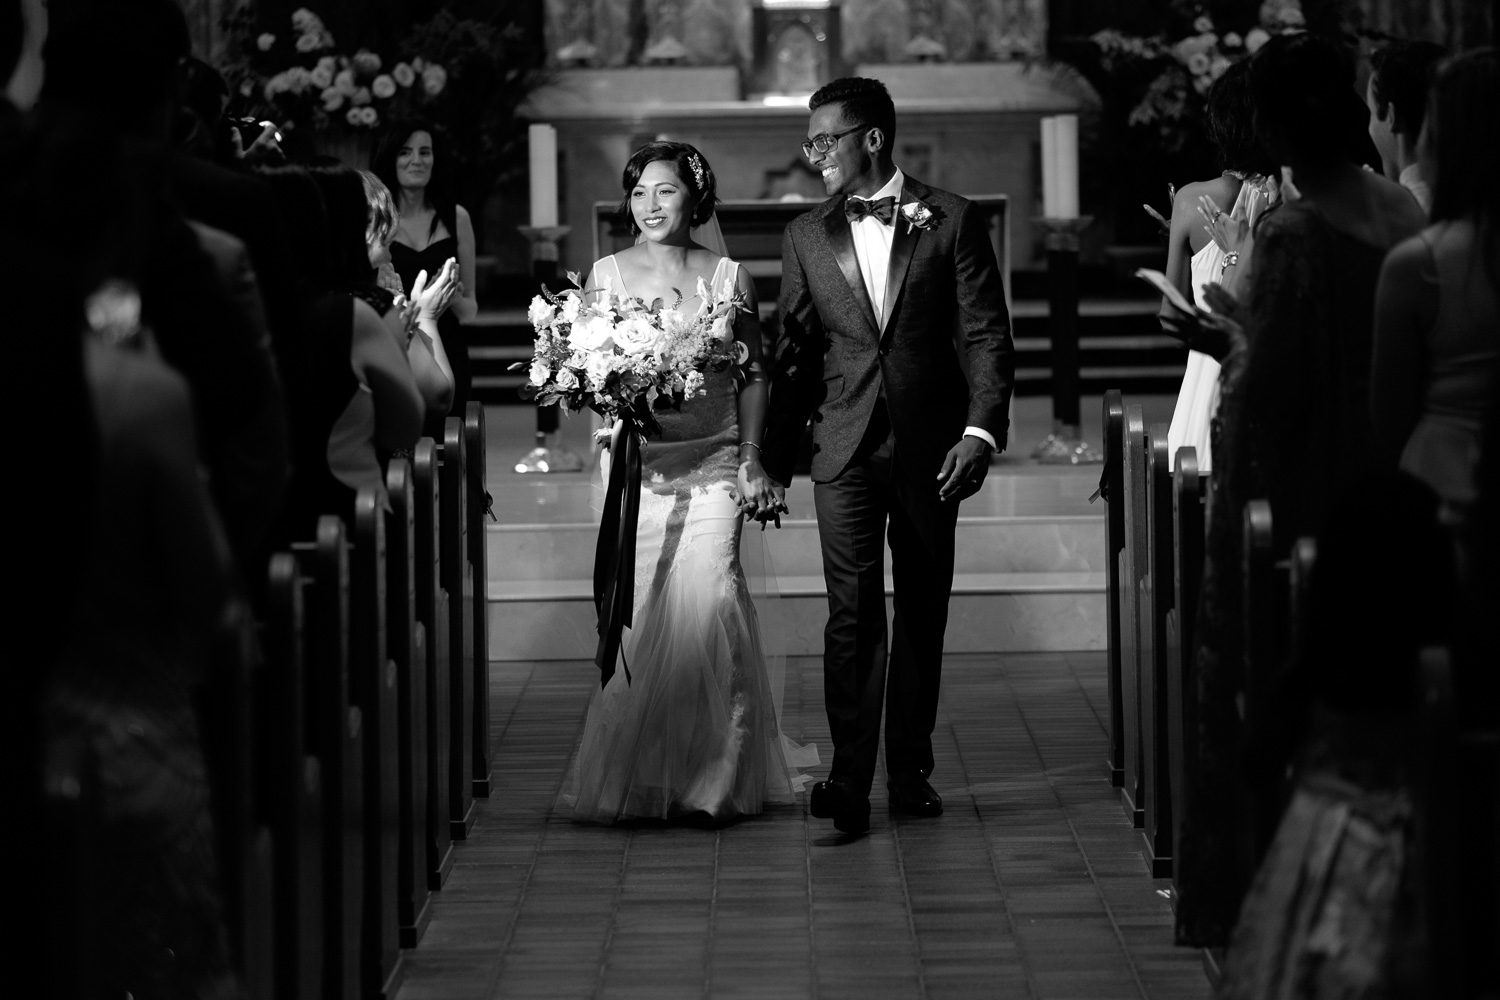 Najwa + Trevin walk down the aisle after their wedding ceremony in Toronto.